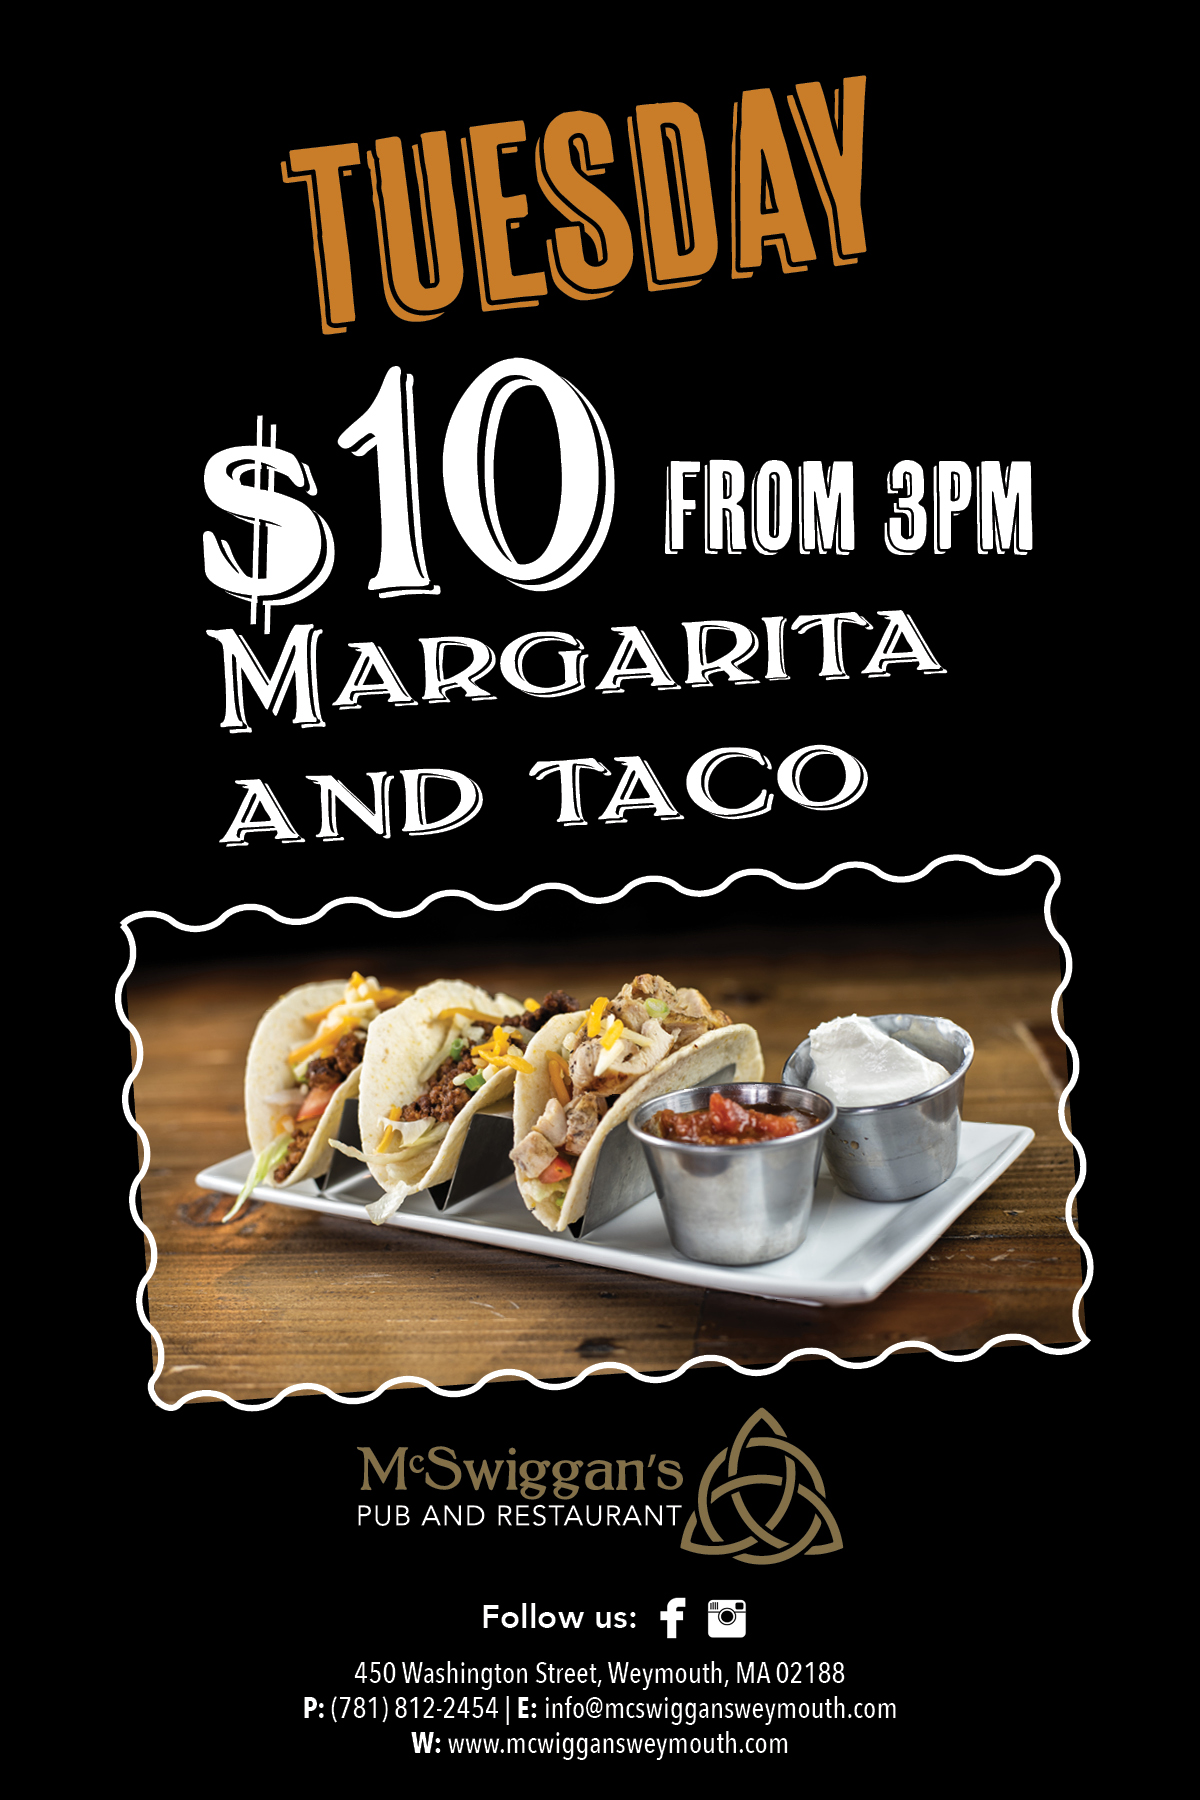 Tuesday $10 Margarita and taco from 3pm